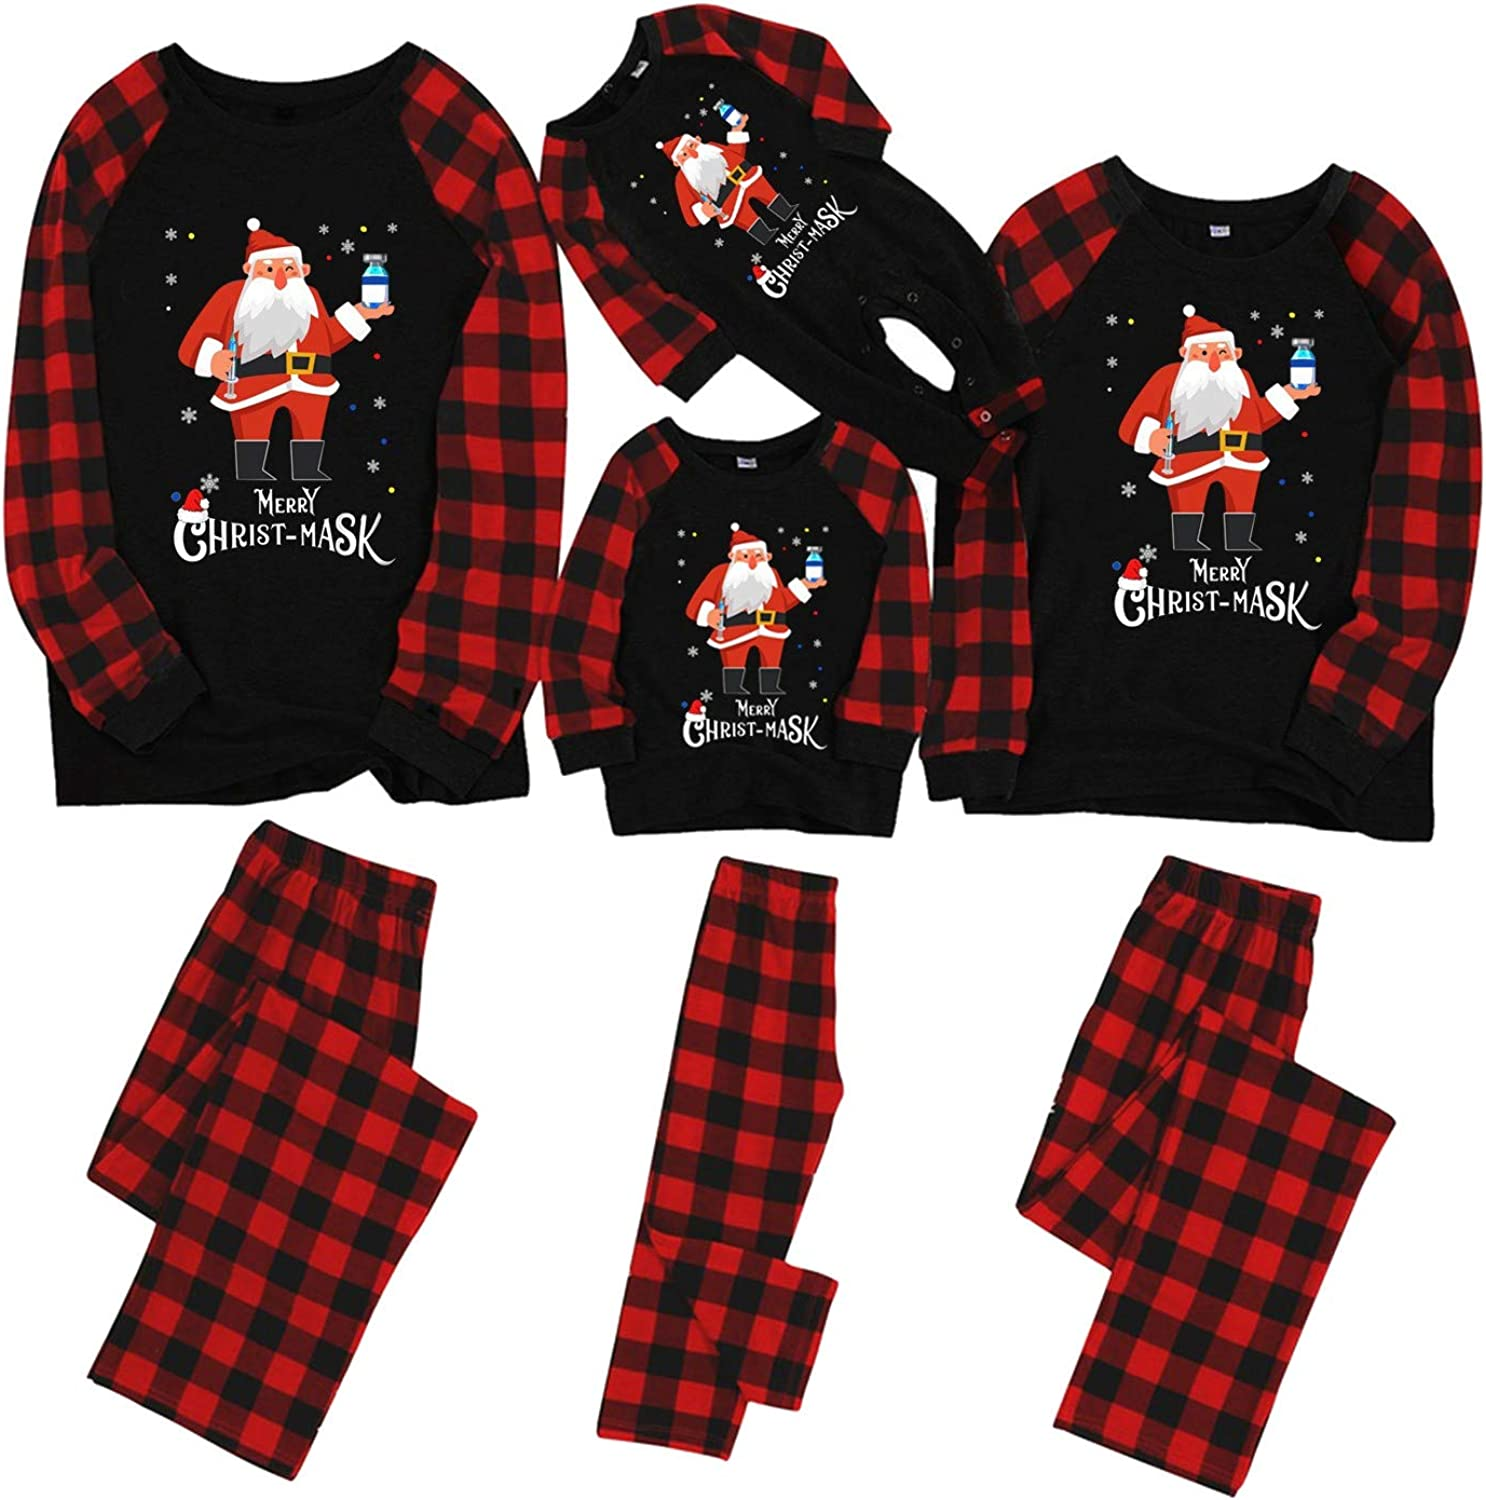 AODONG Christmas Pajamas for Family Plus Size Set Matching Christmas Women Sexy Jumpsuit Long Sleeve V Neck Bodysuit Bodycon Overall Romper Summer Pajamas Sleepwear Pjs Set